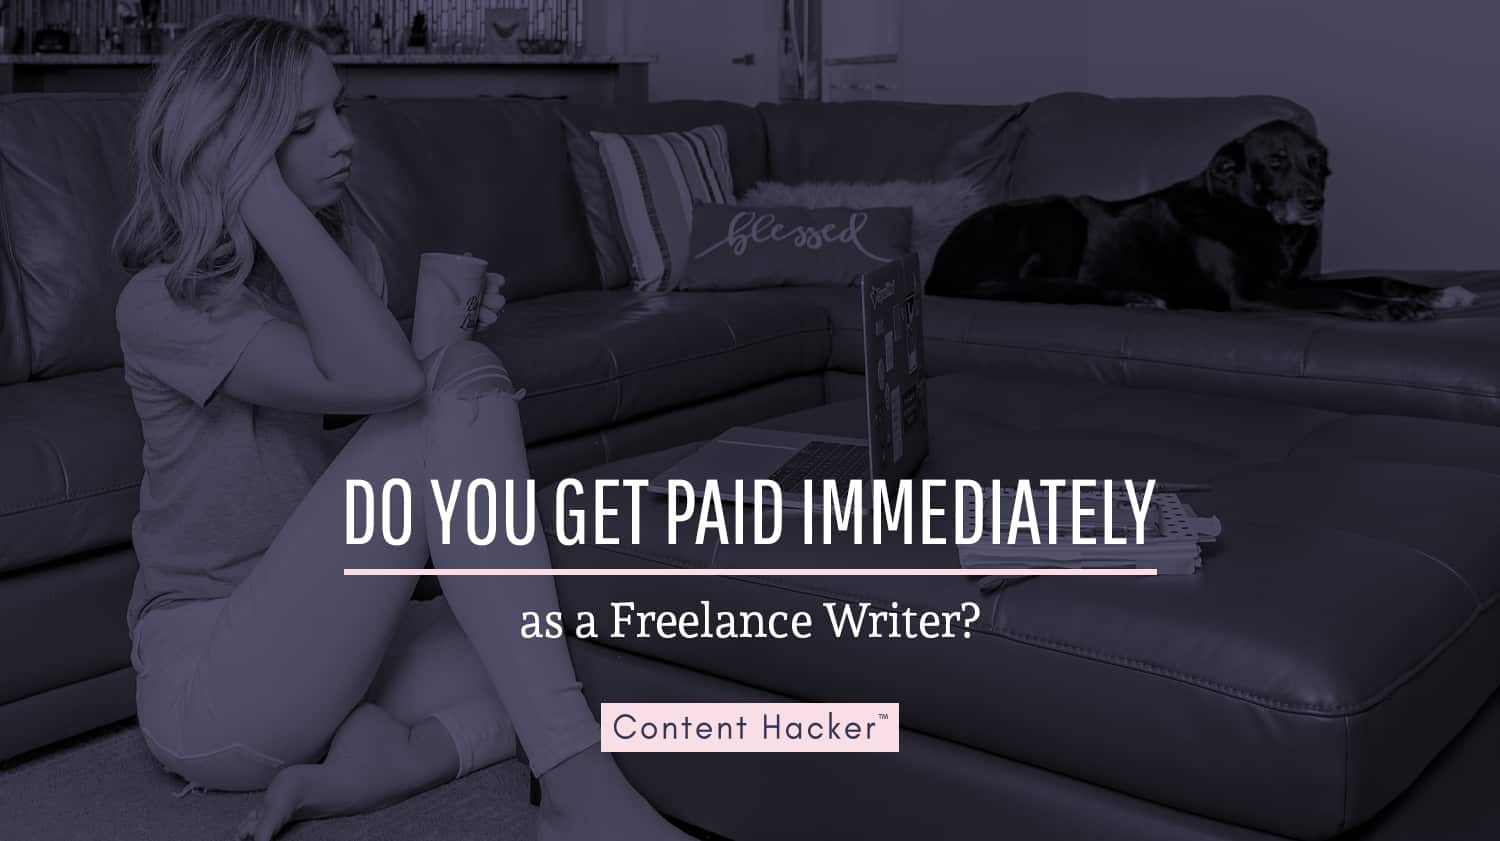 do you get paid immediately by being a freelance writer